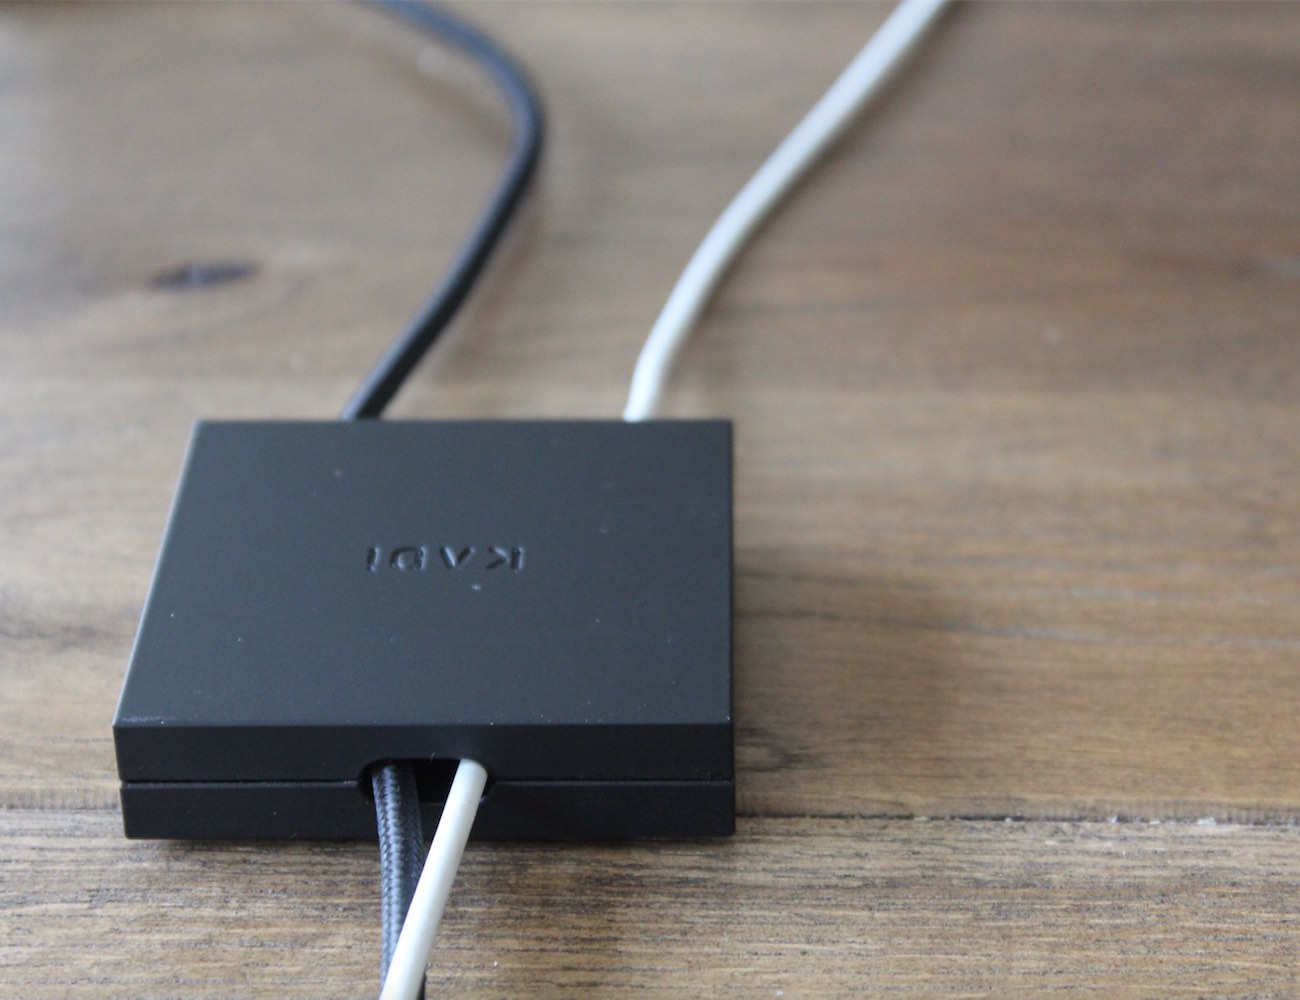 The Desk Tile – Cable Management Tool